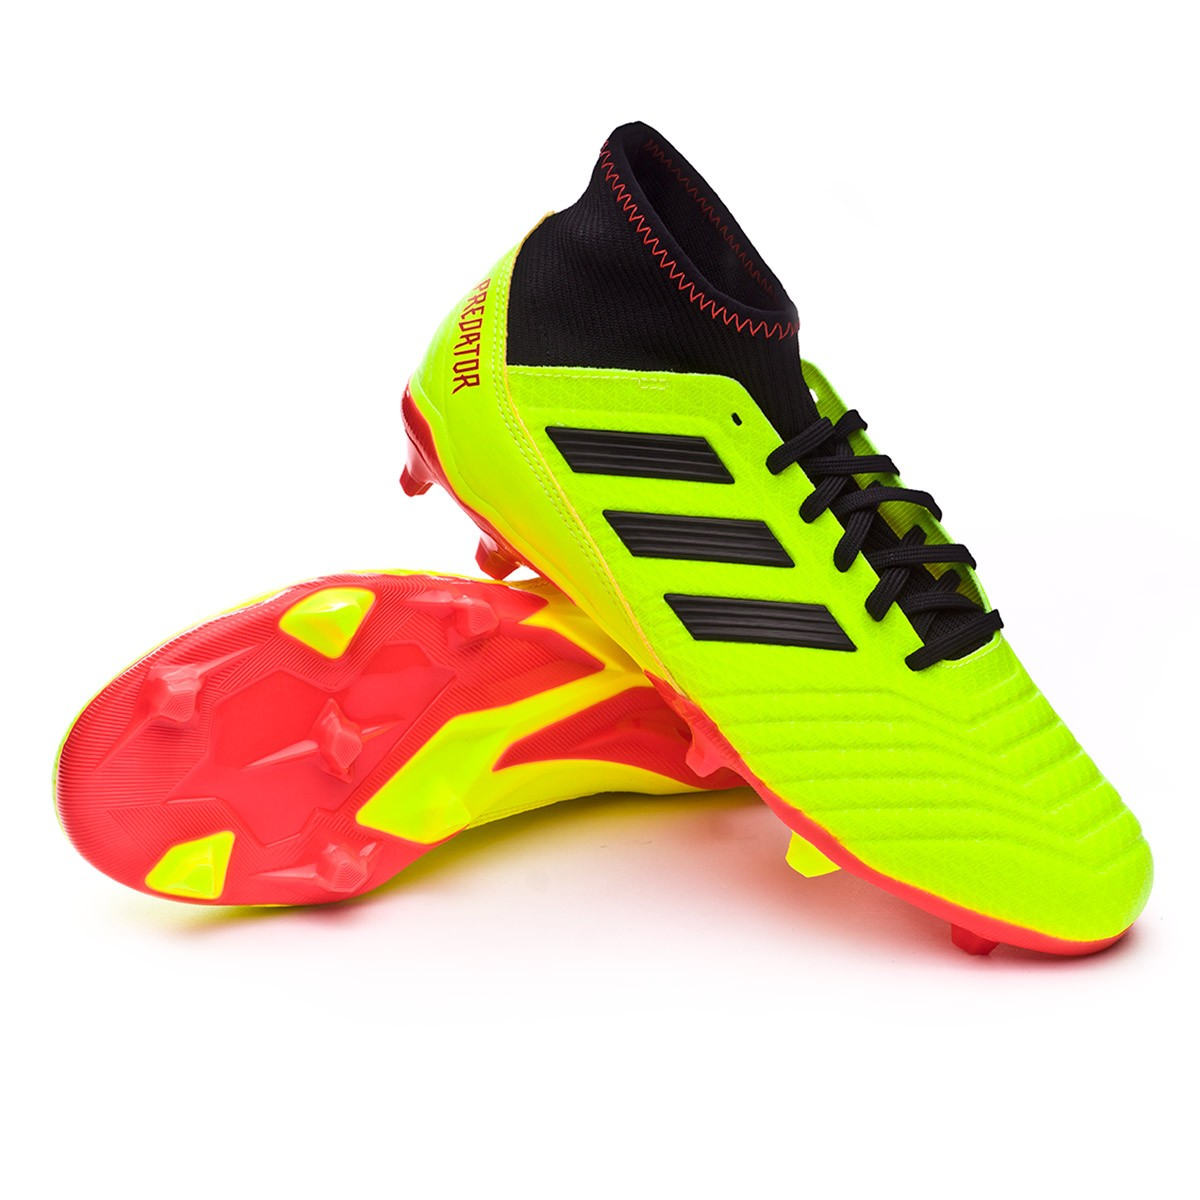 3b421ec9d5dc9 Football Boots adidas Predator 18.3 FG Solar yellow-Black-Solar red ...